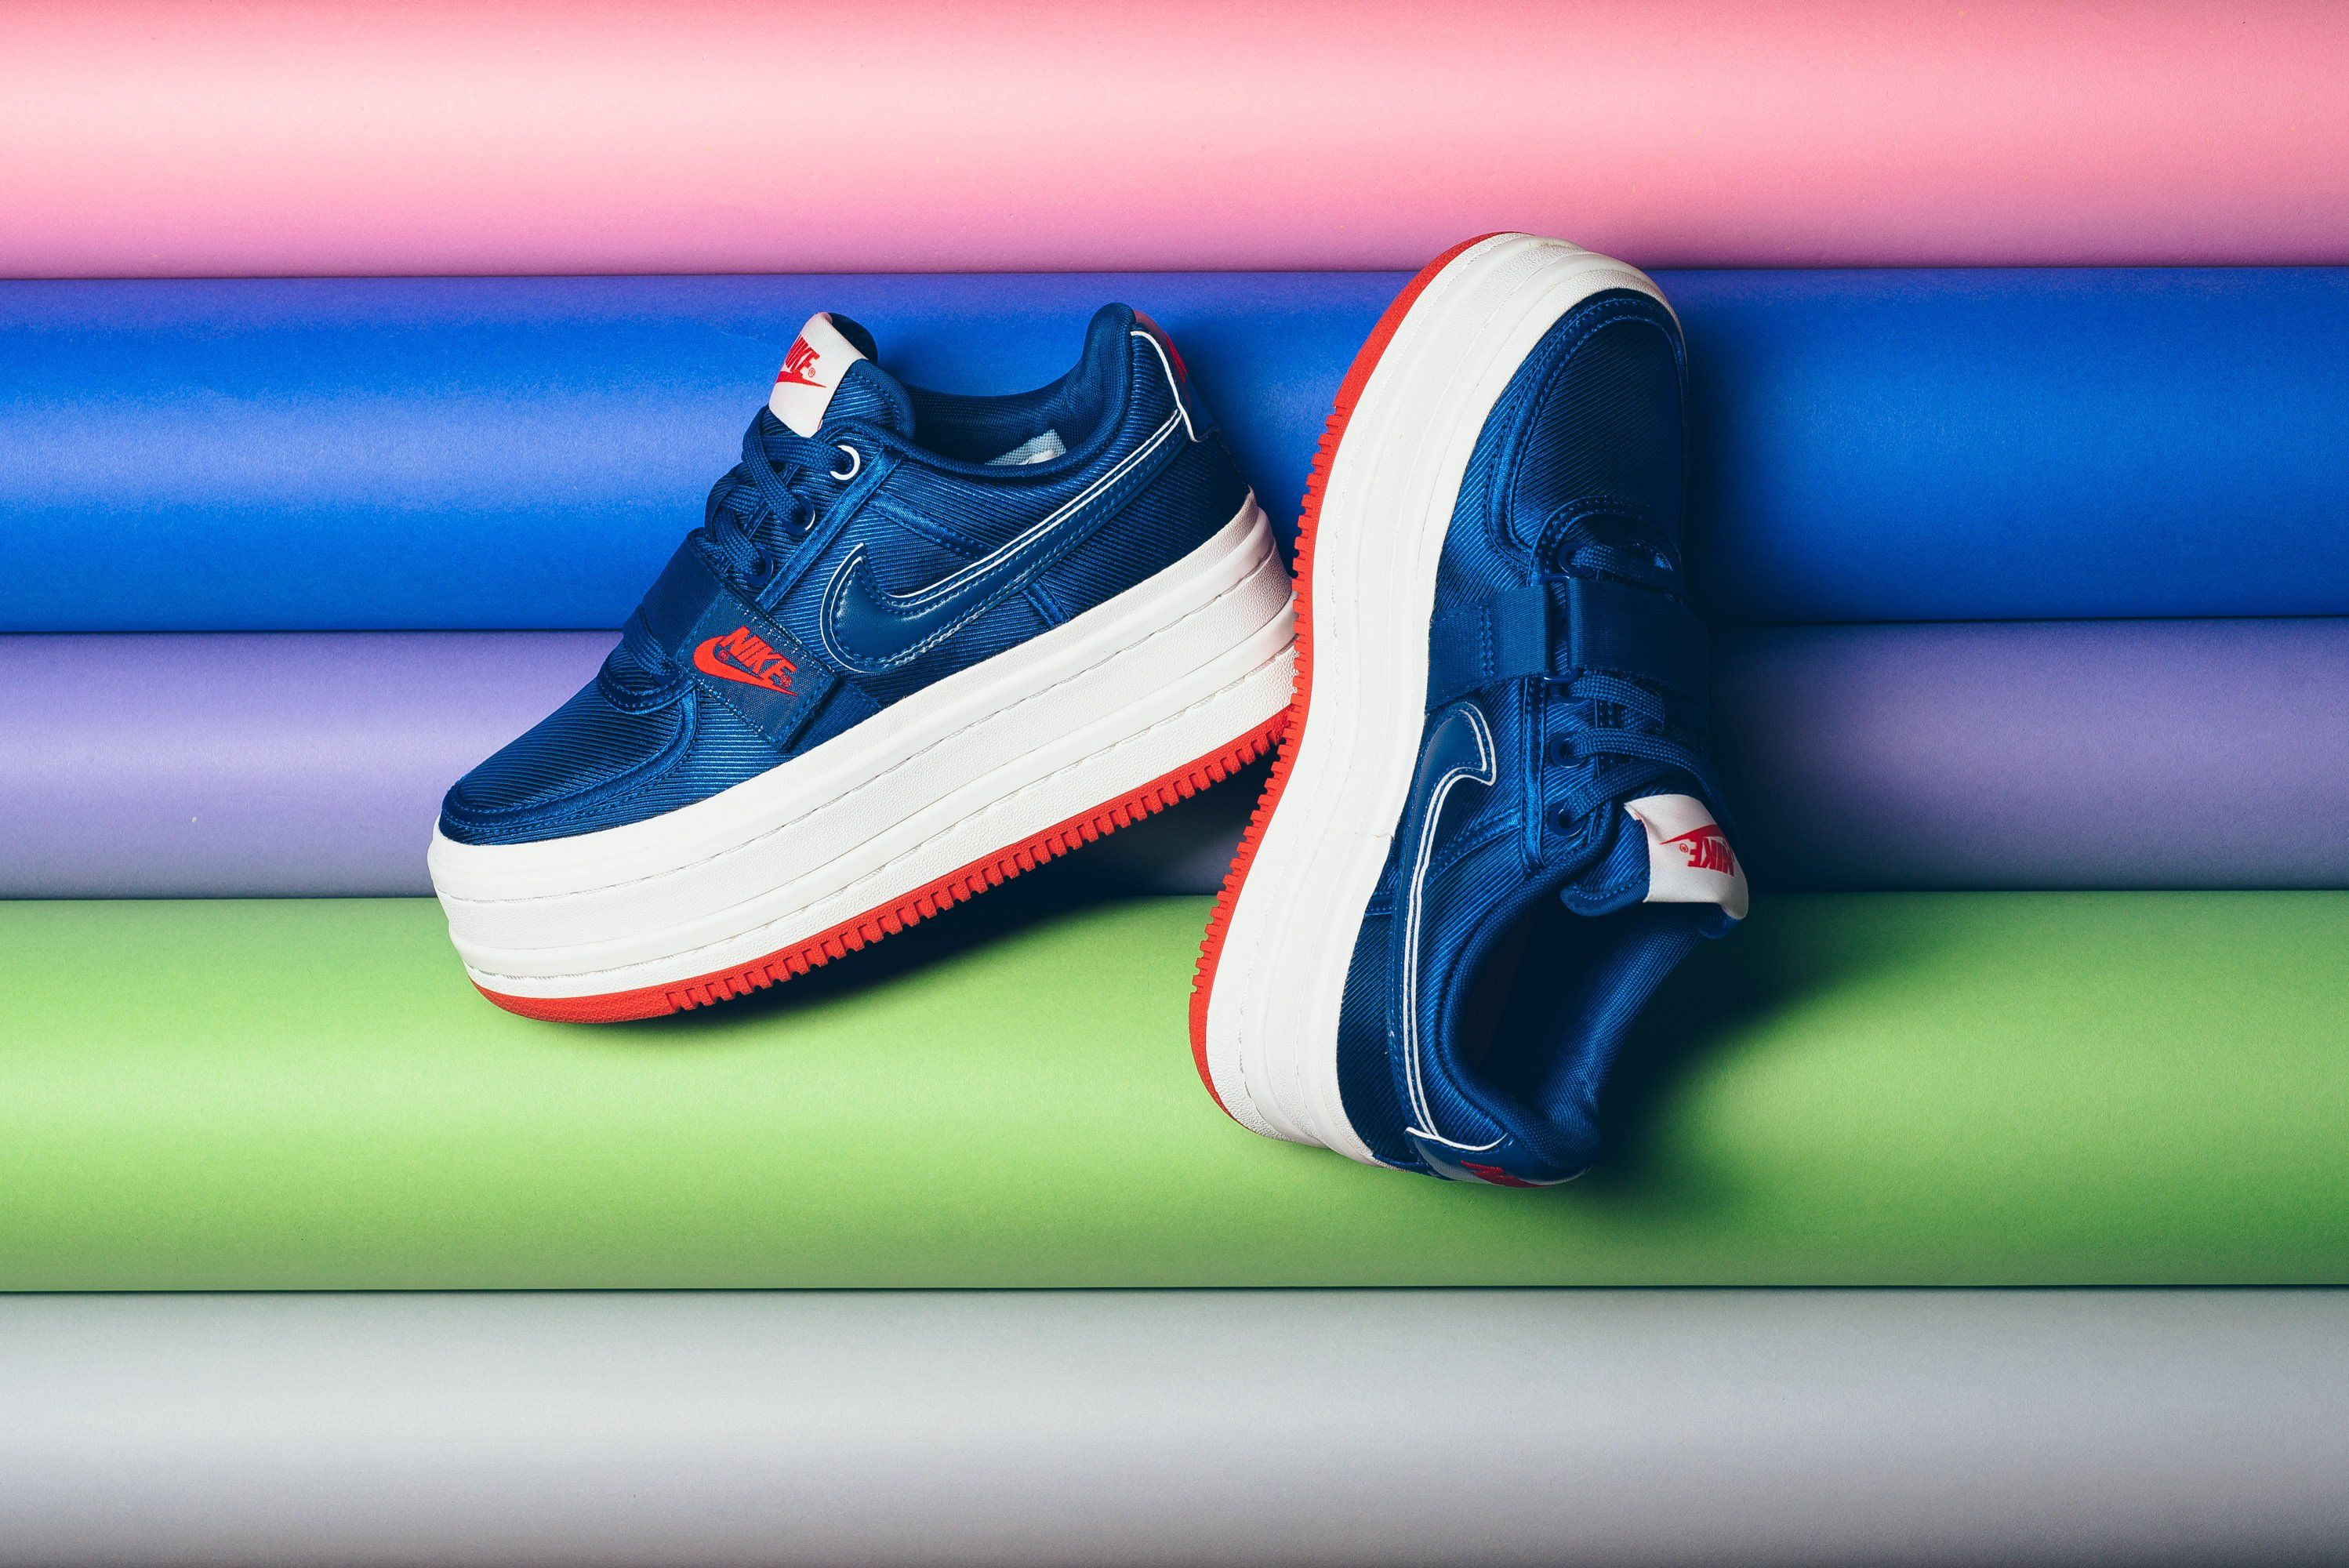 78cae6e715a3 NIKE VANDAL 2X DOUBLE STACK SURPRISE GYM BLUE PLATFORM AO2868 400 ...